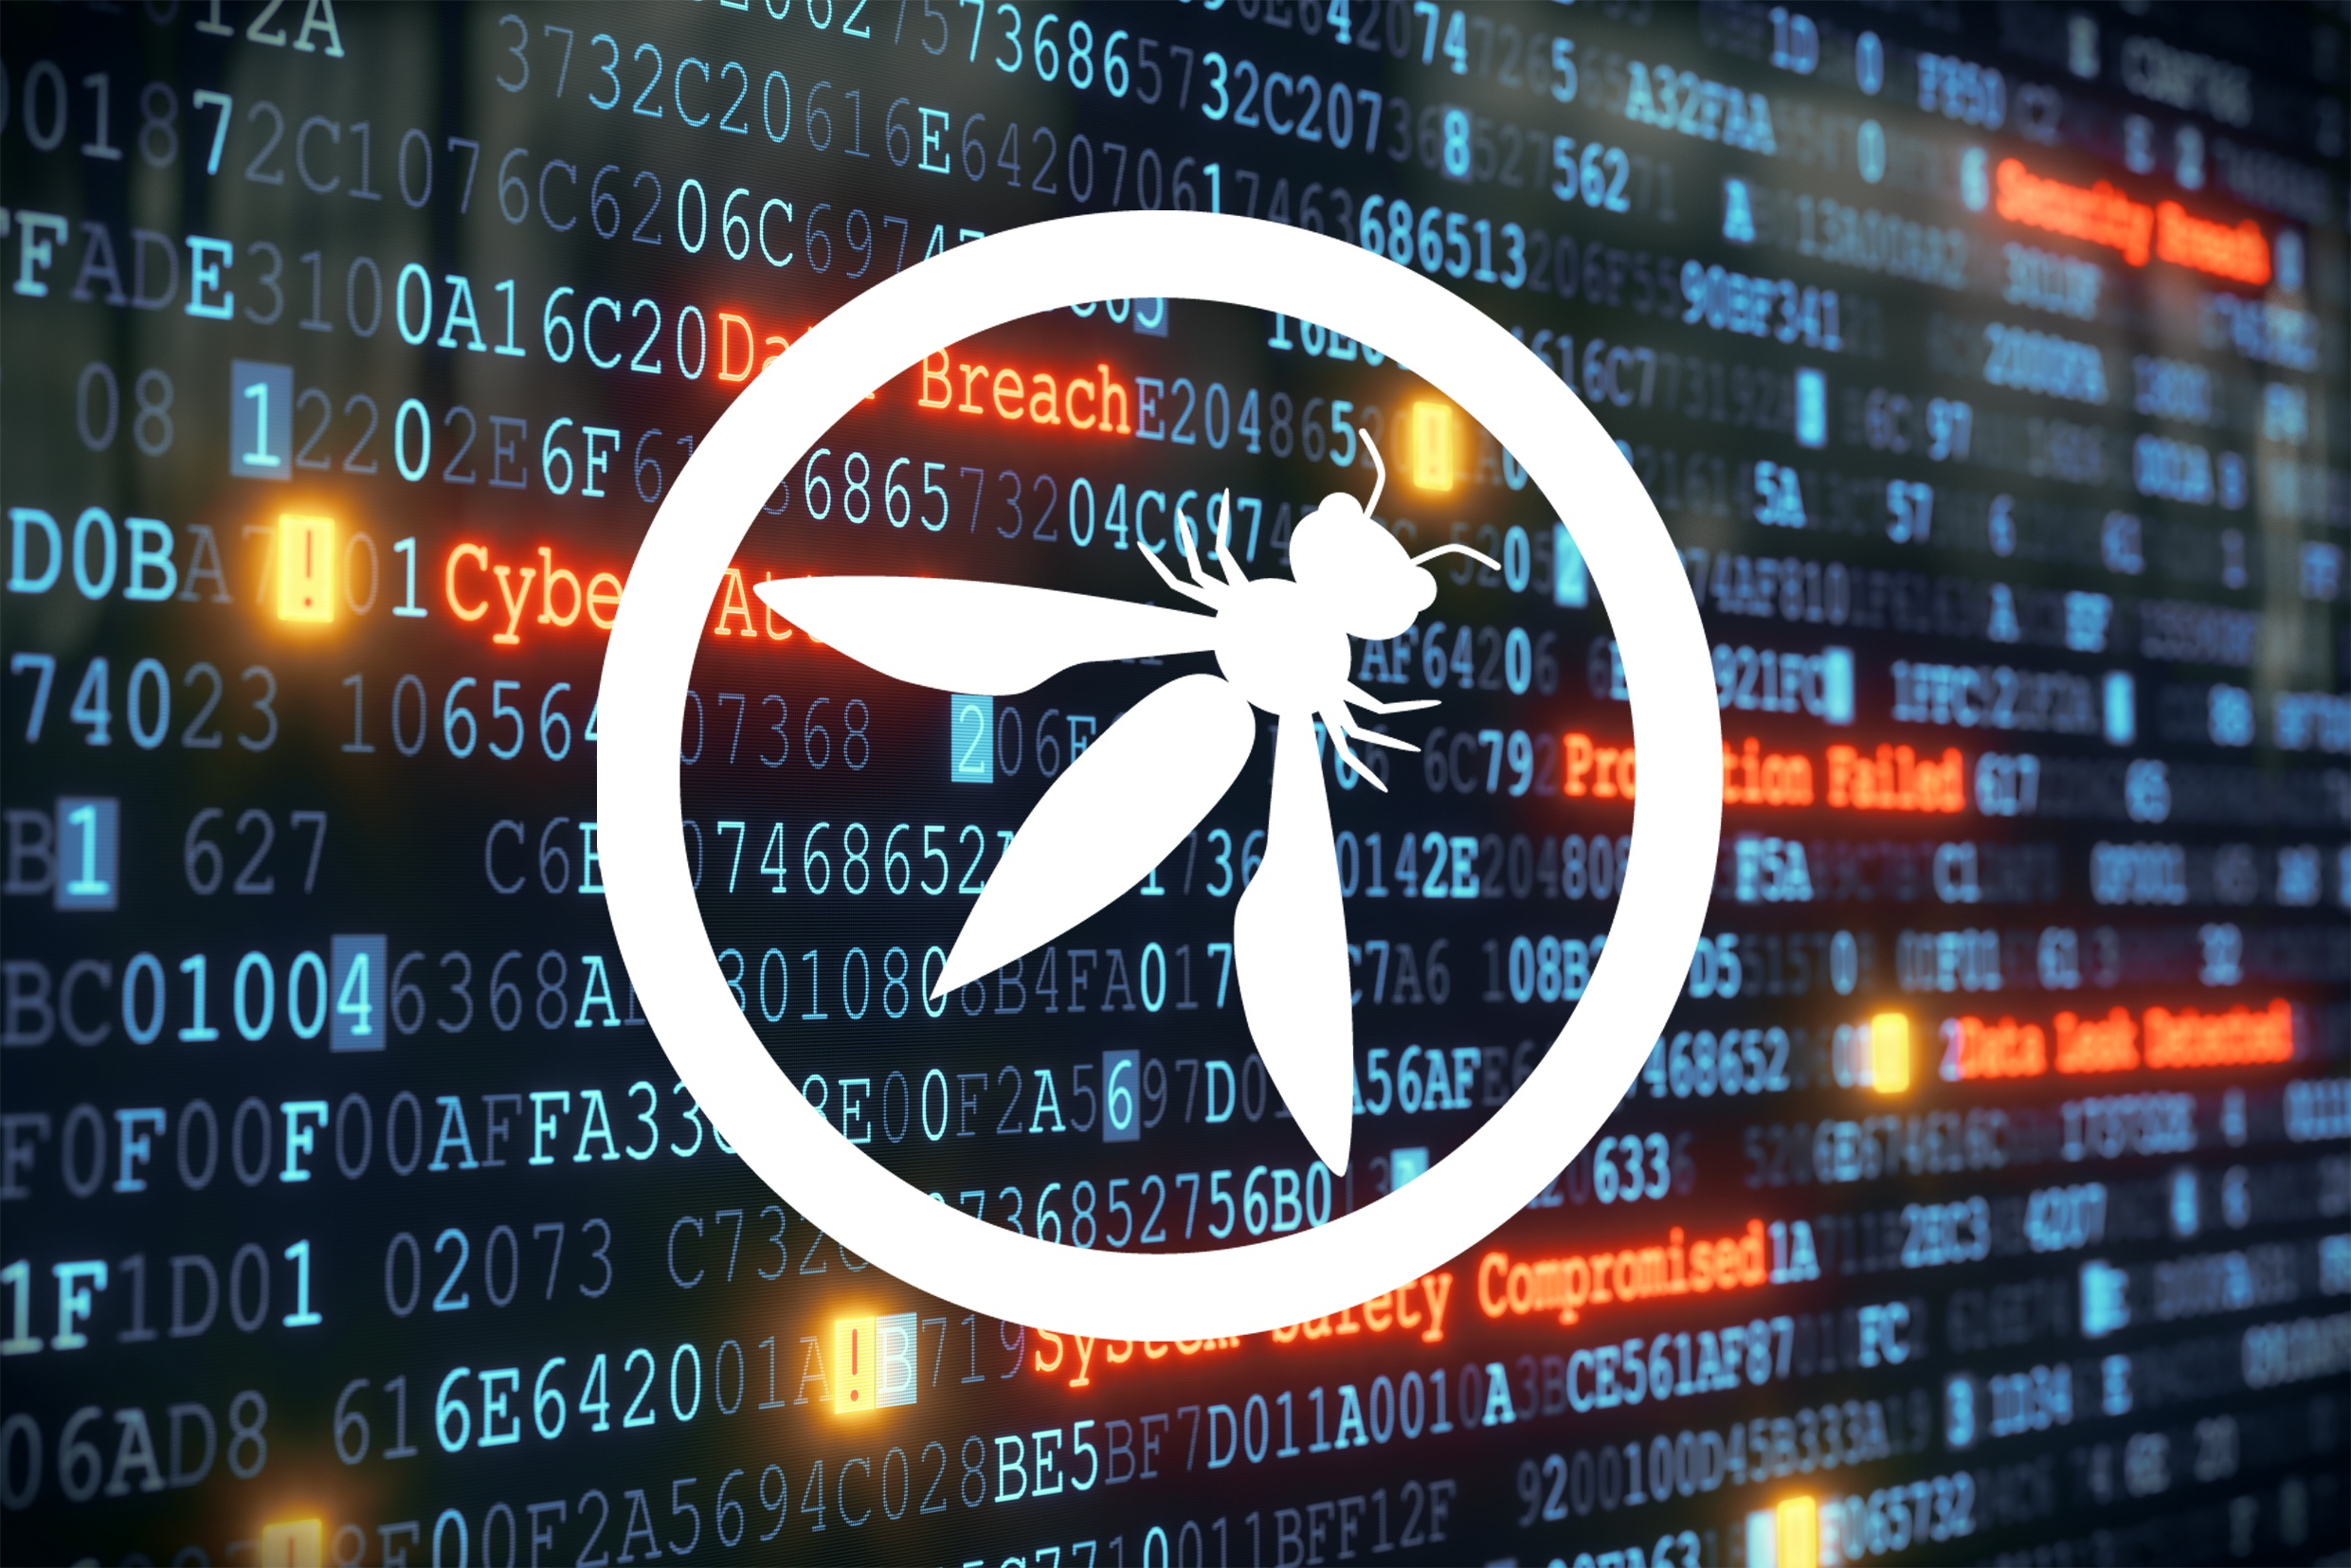 OWASP Top 10: Why it Still Matters